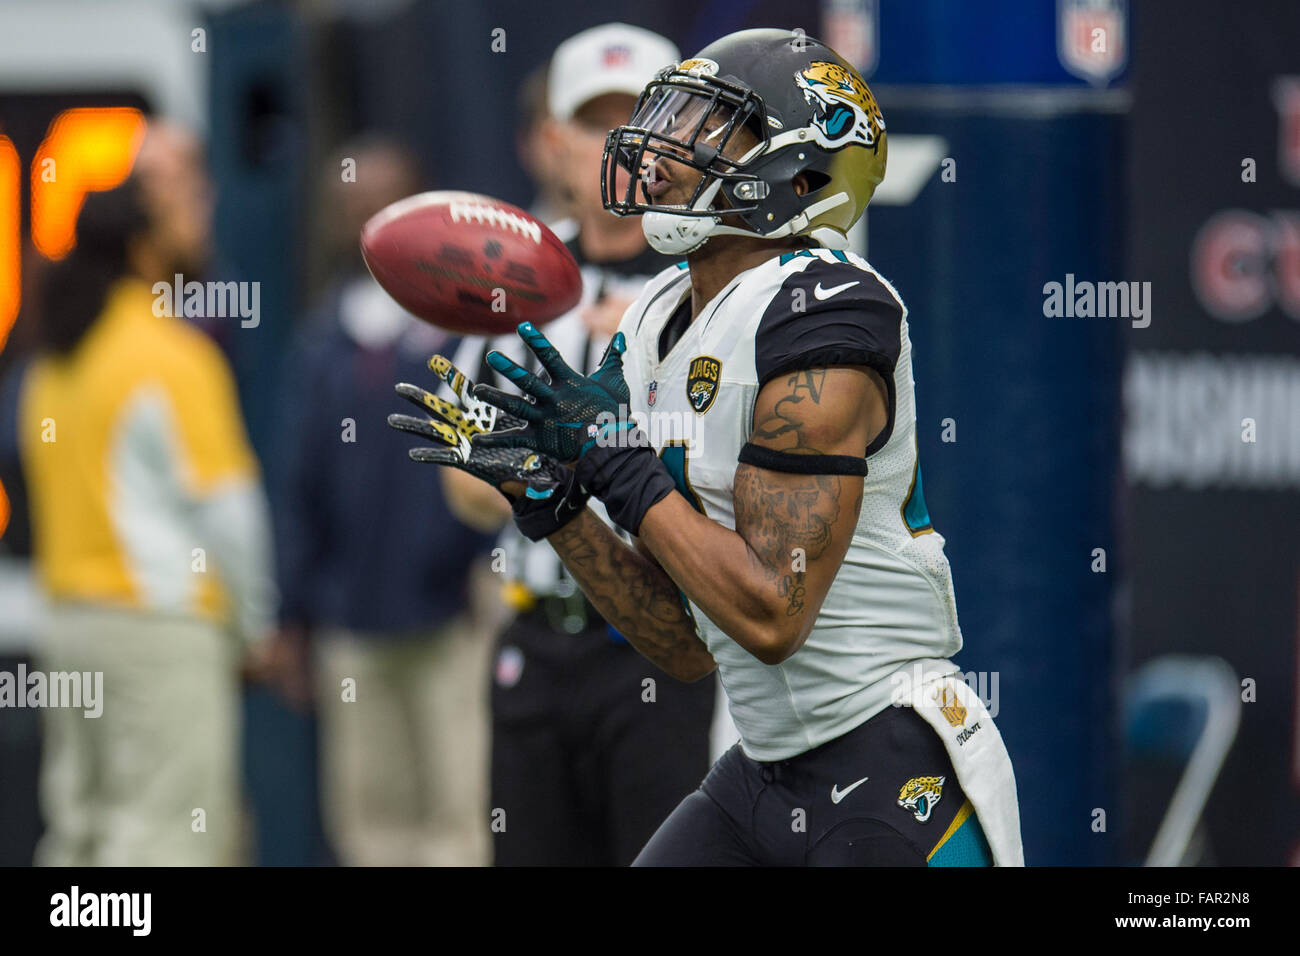 Houston, Texas, USA. 3rd Jan, 2016. Jacksonville Jaguars Cornerback Nick  Marshall (41) Receives A Kickoff During The 4th Quarter Of An NFL Game  Between The ...